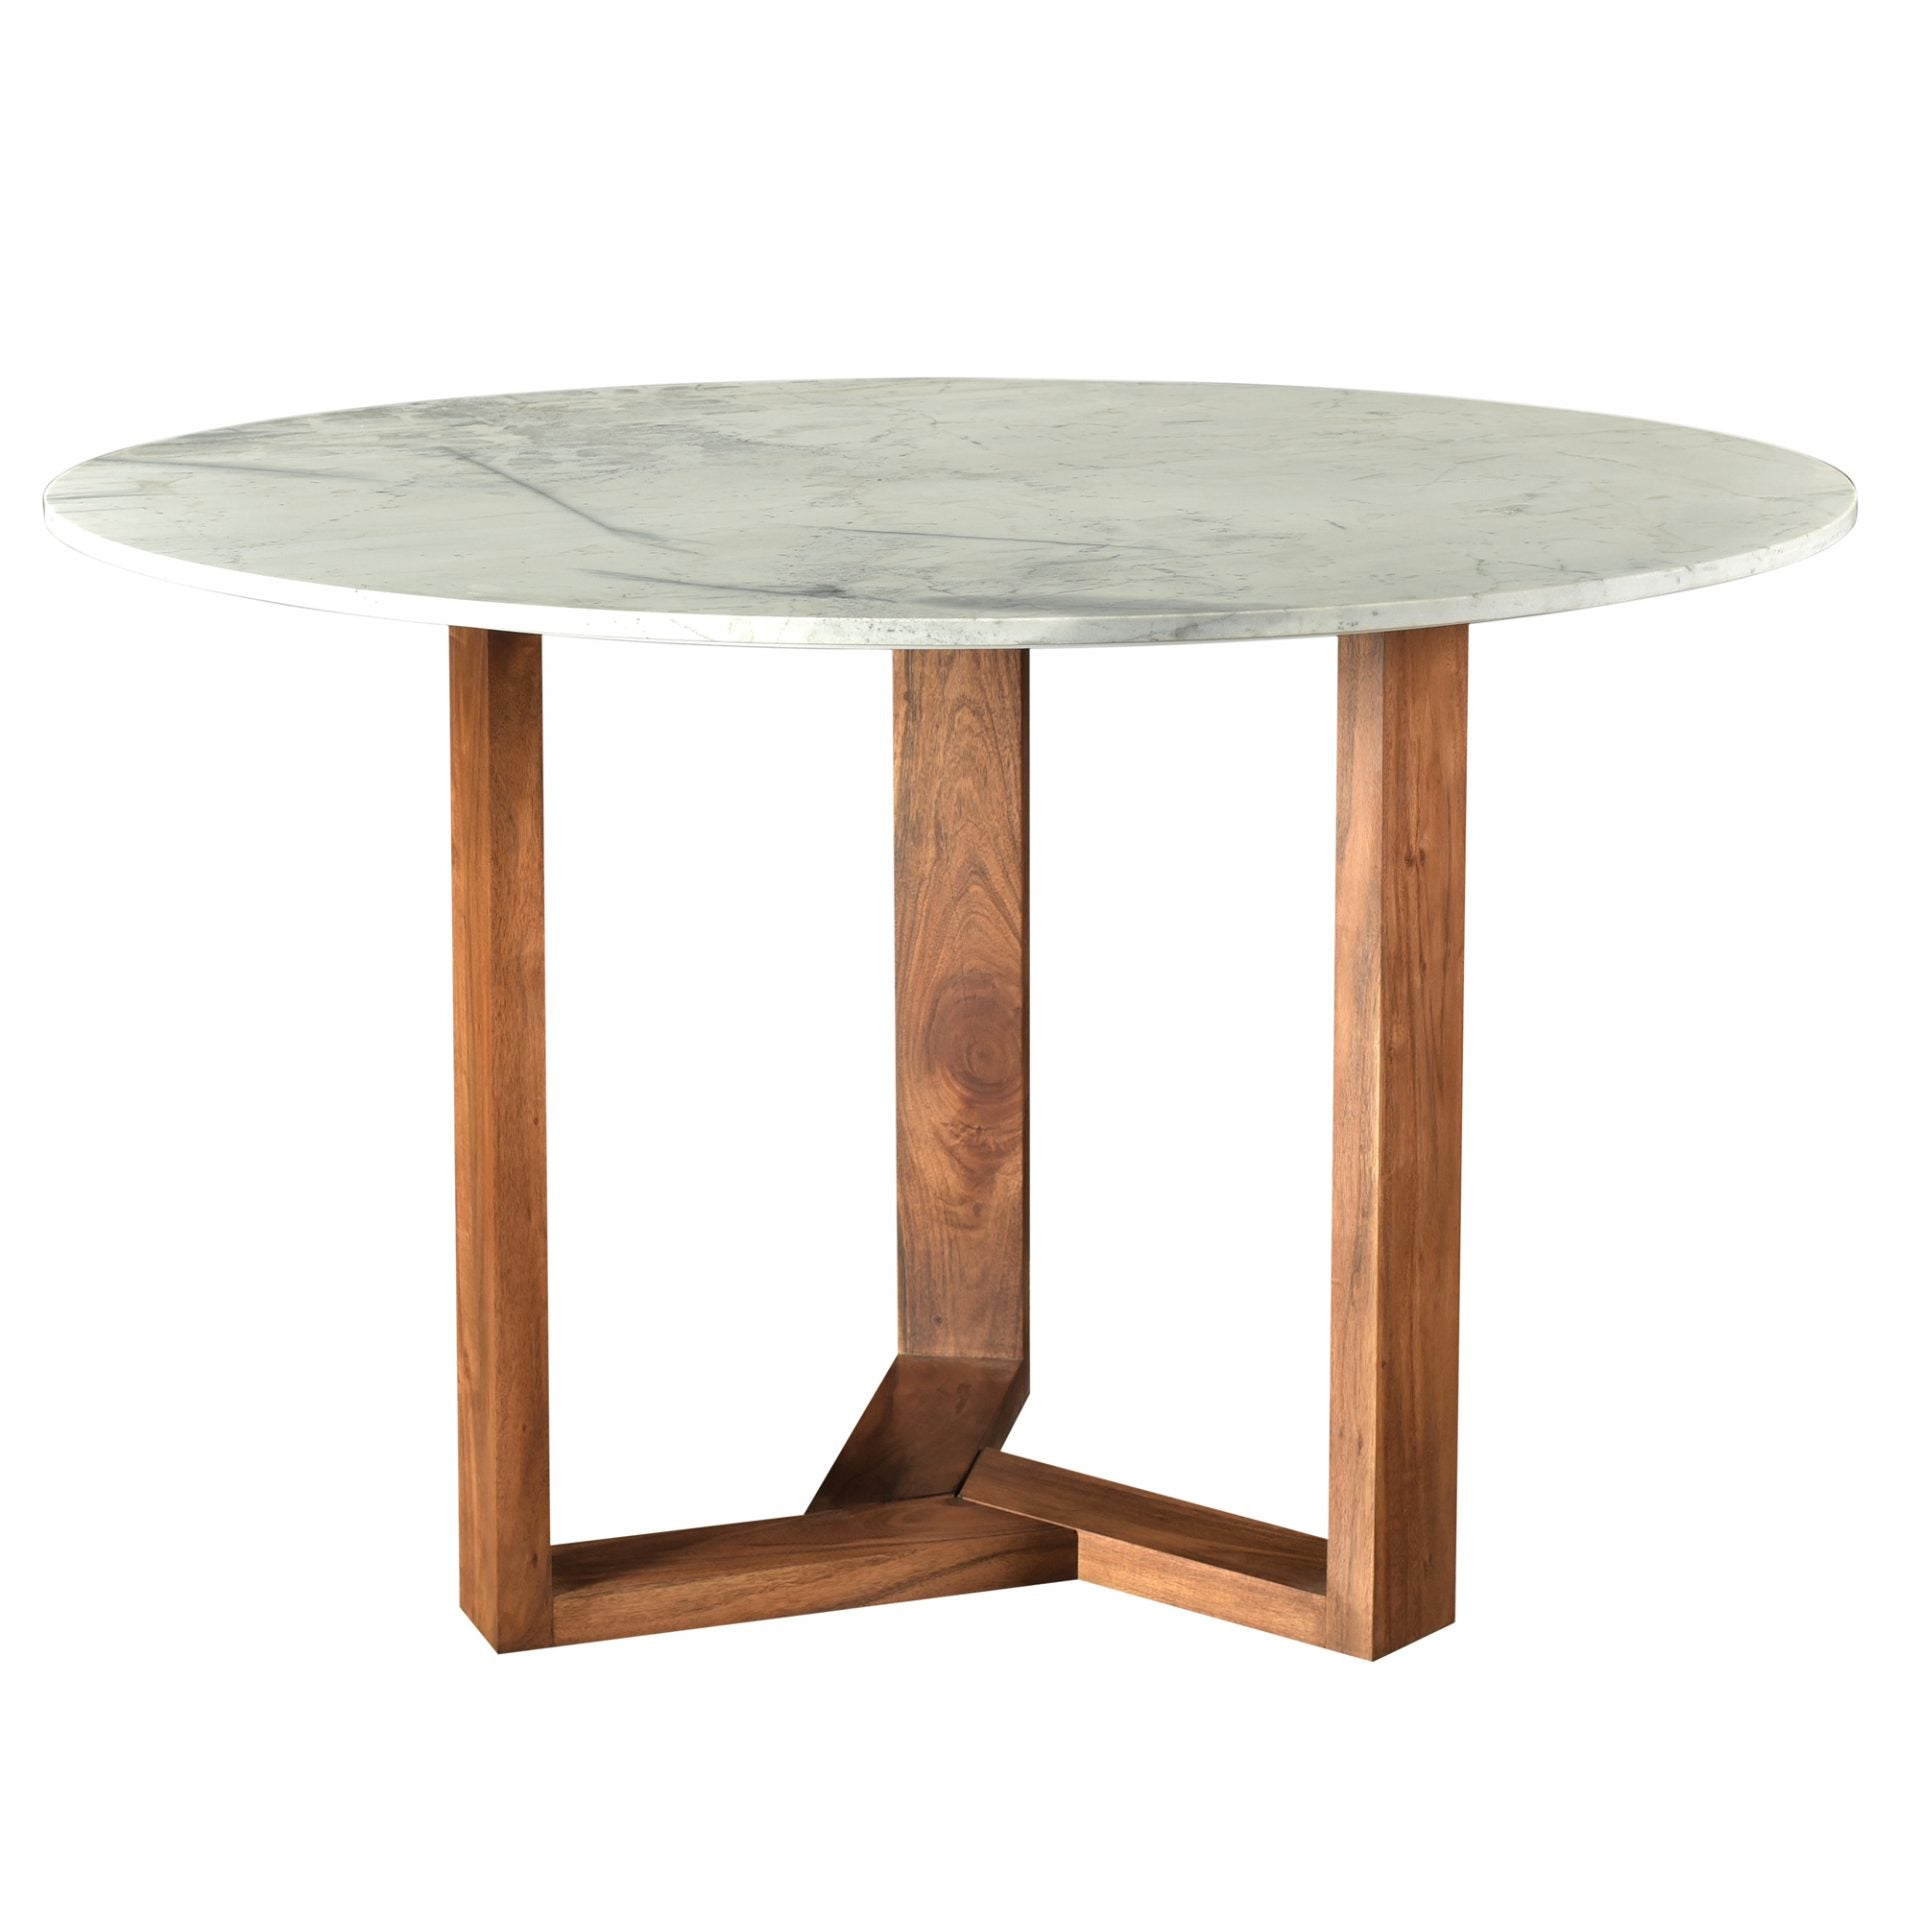 Jinxx Dining Table - Brown